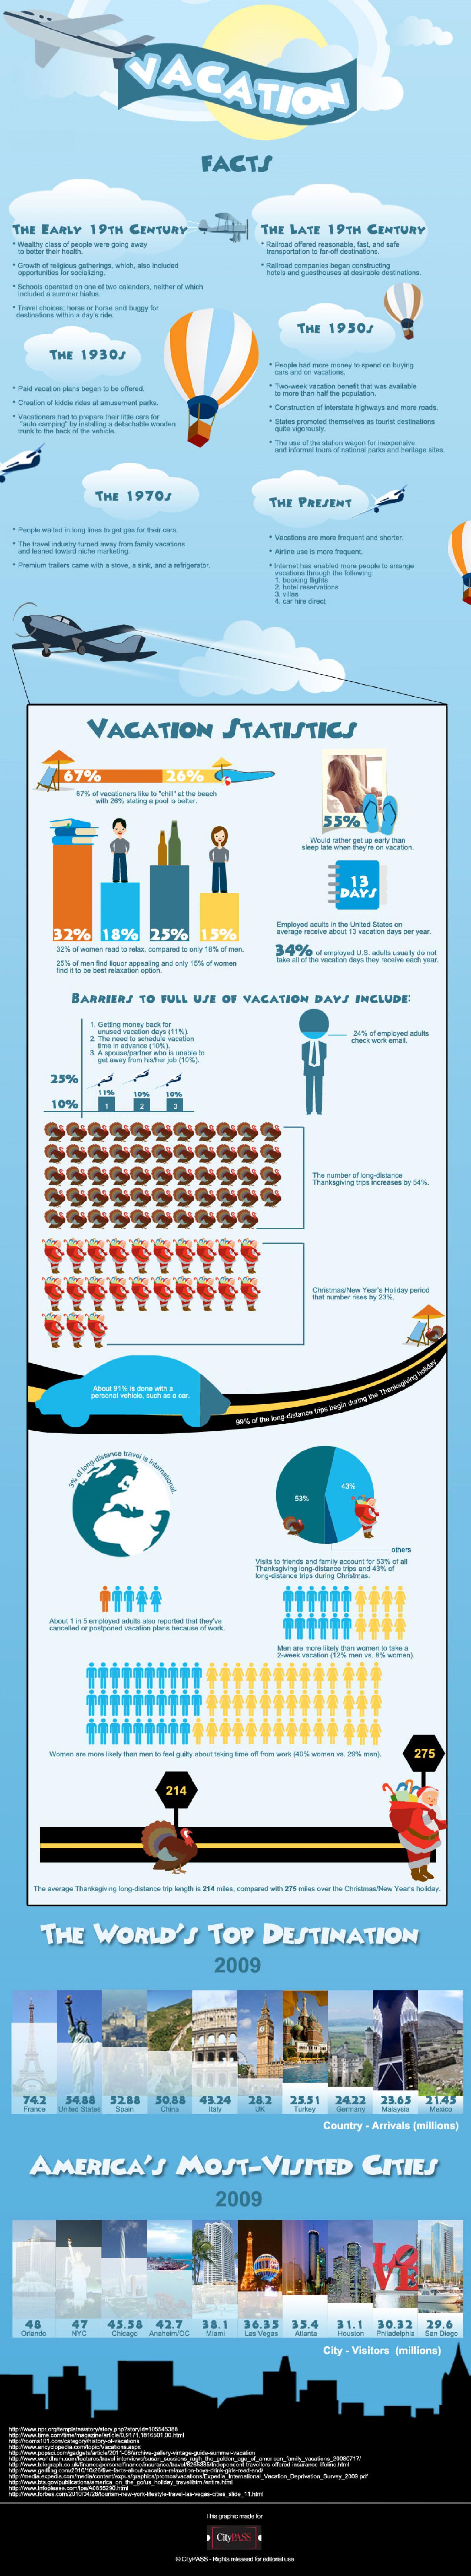 How Vacations Have Changed Infographic